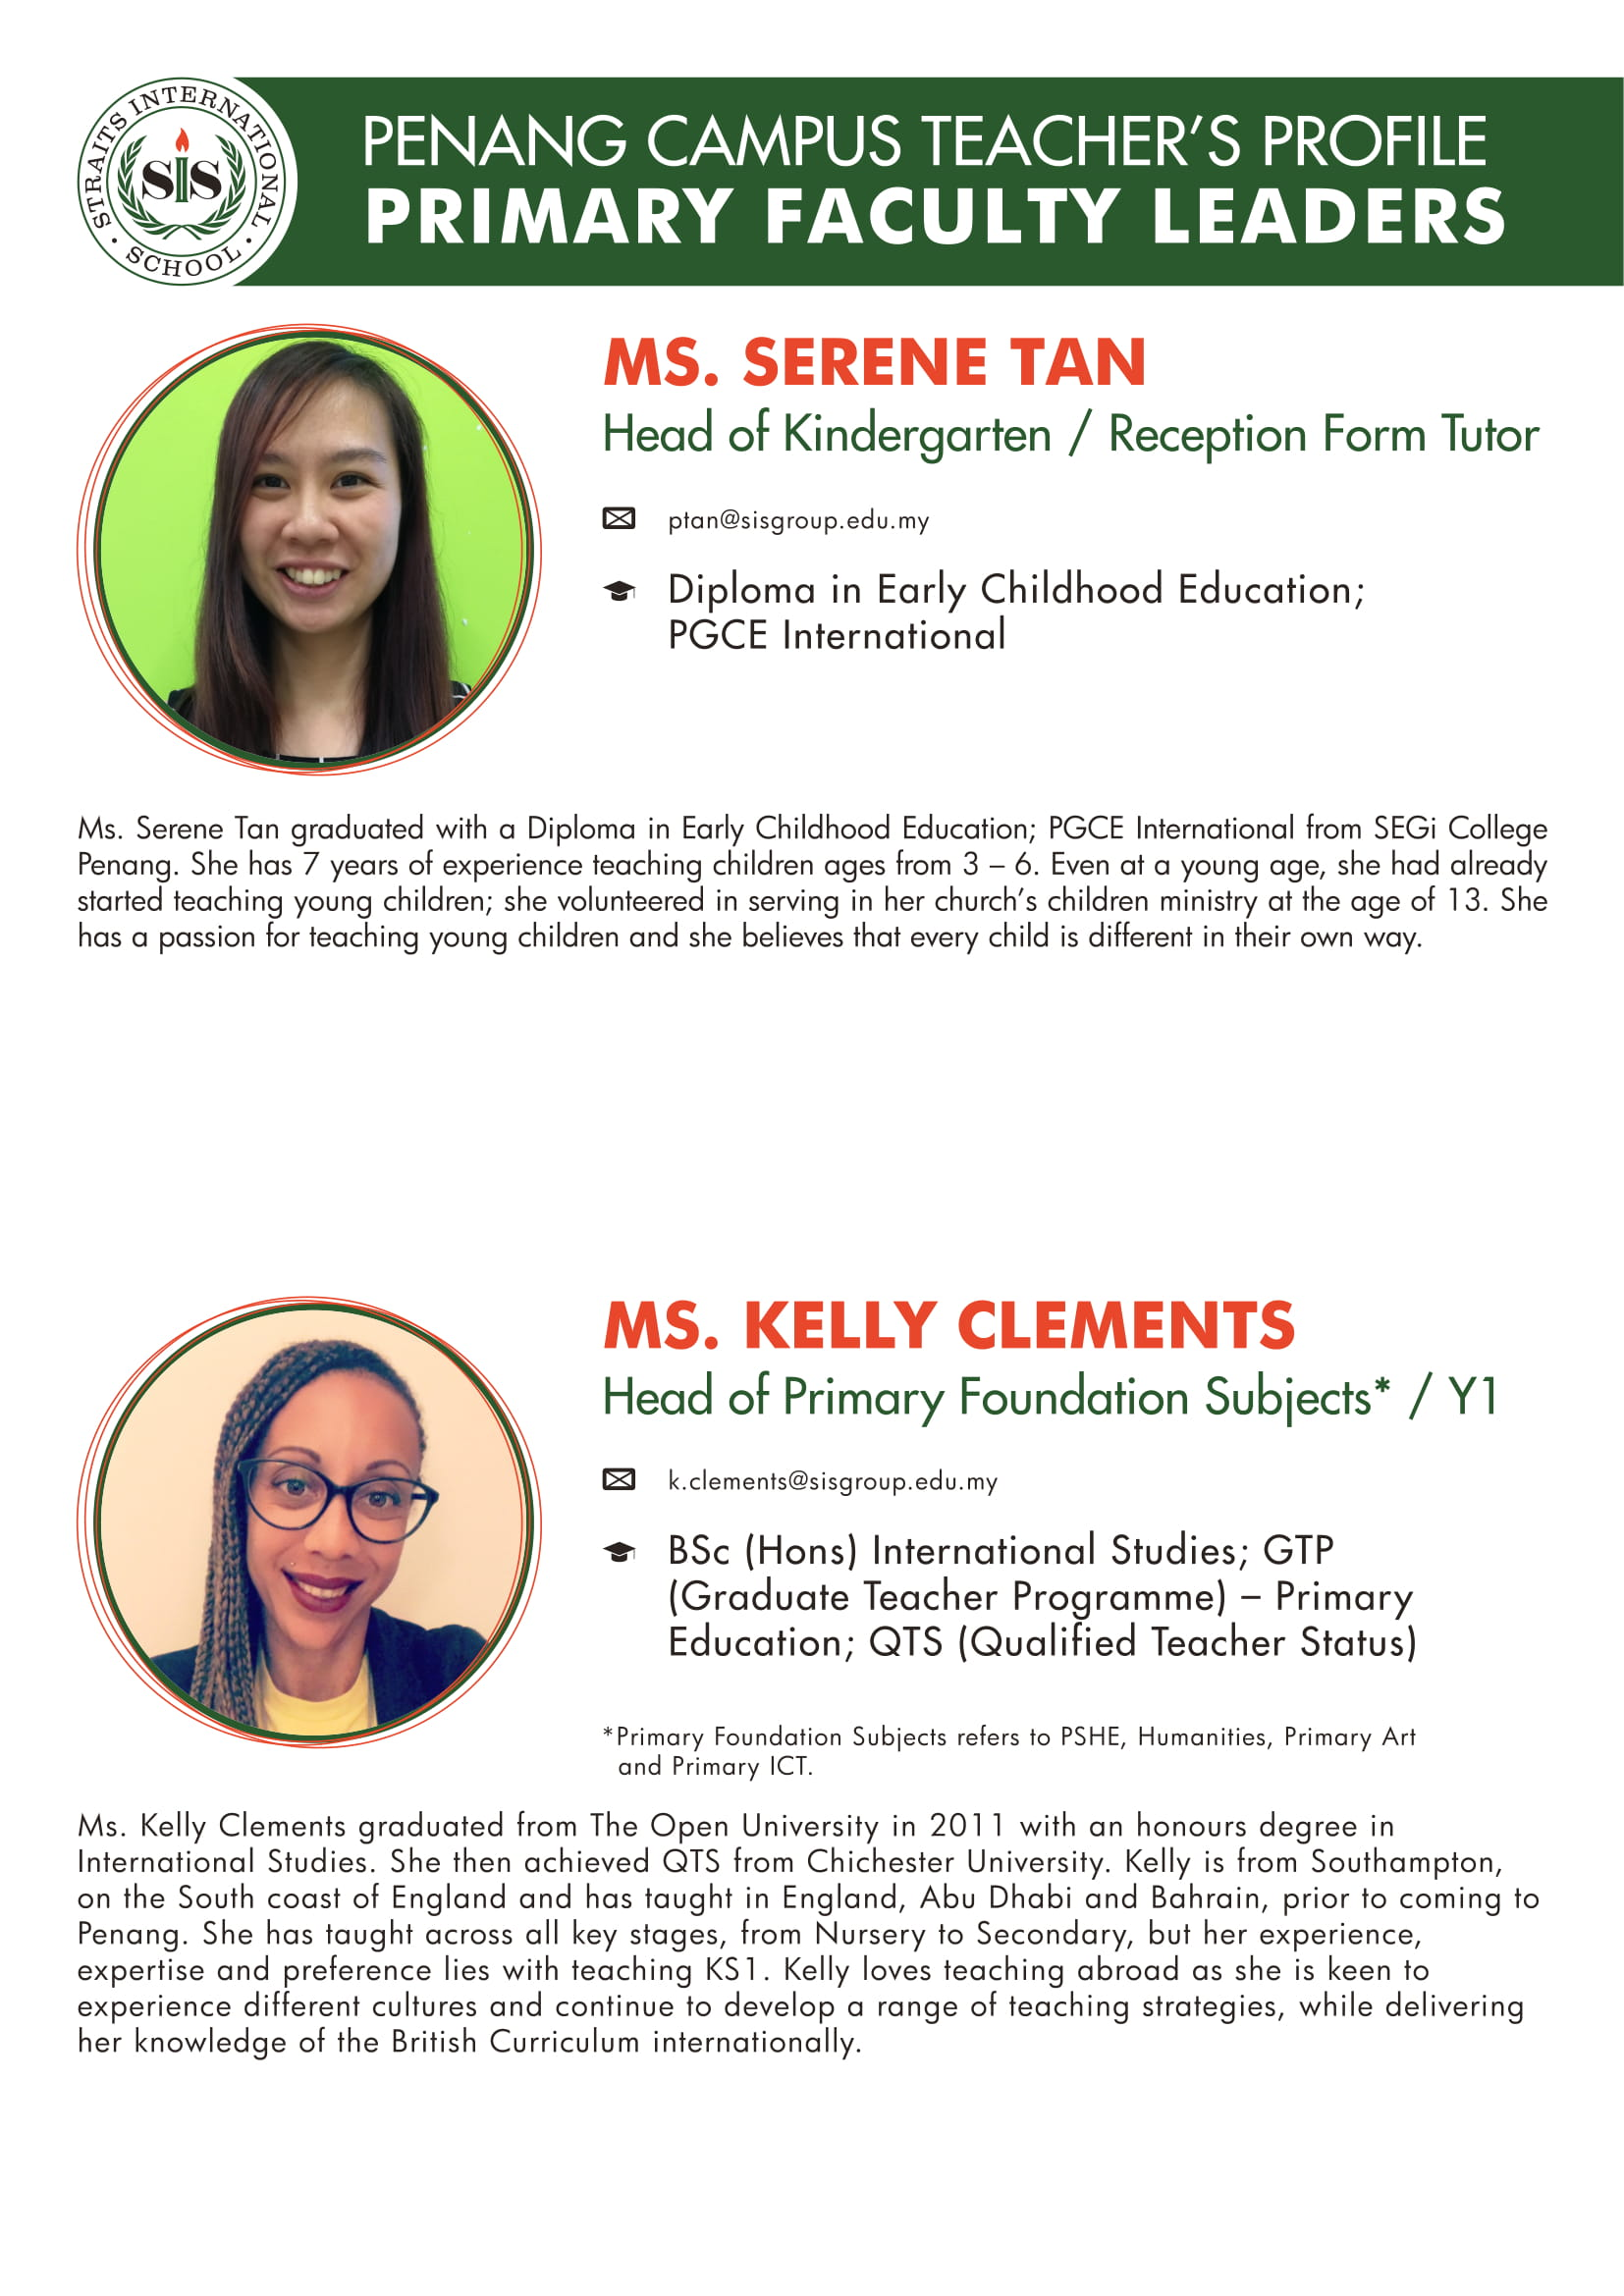 Ms. Serene Tan and Ms. Kelly Clements teacher profile